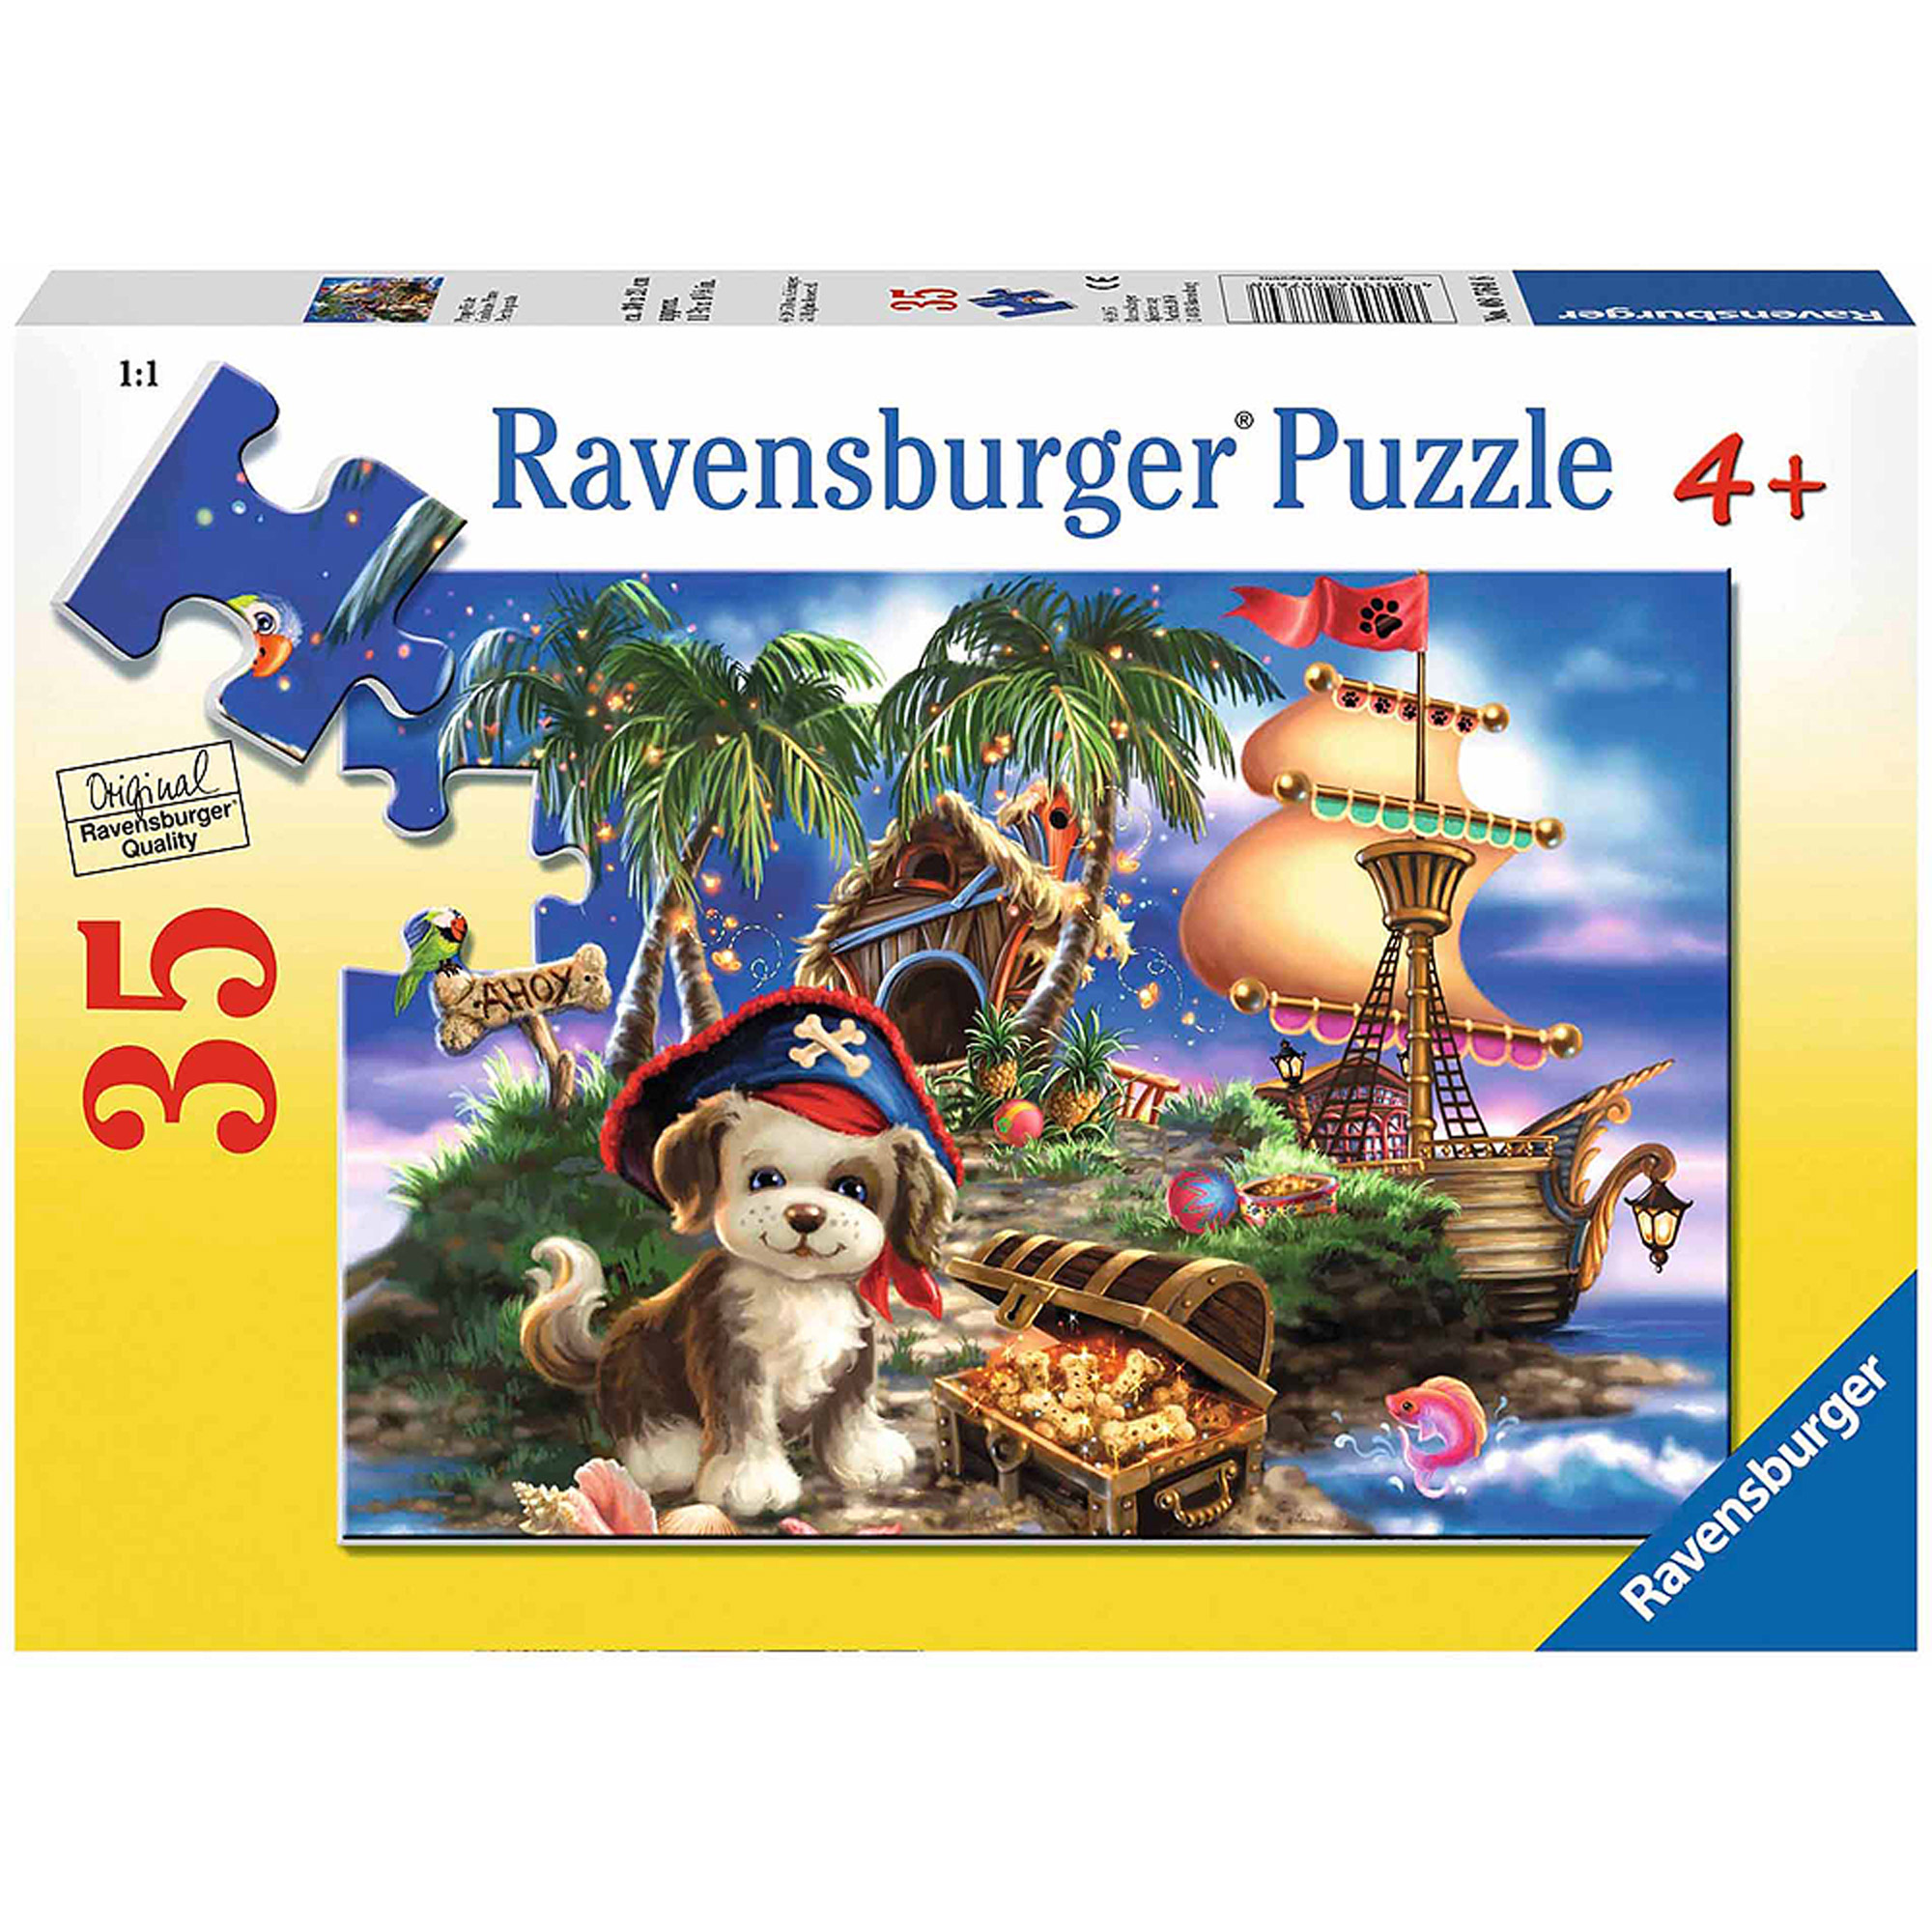 Ravensburger Puppy Pirate